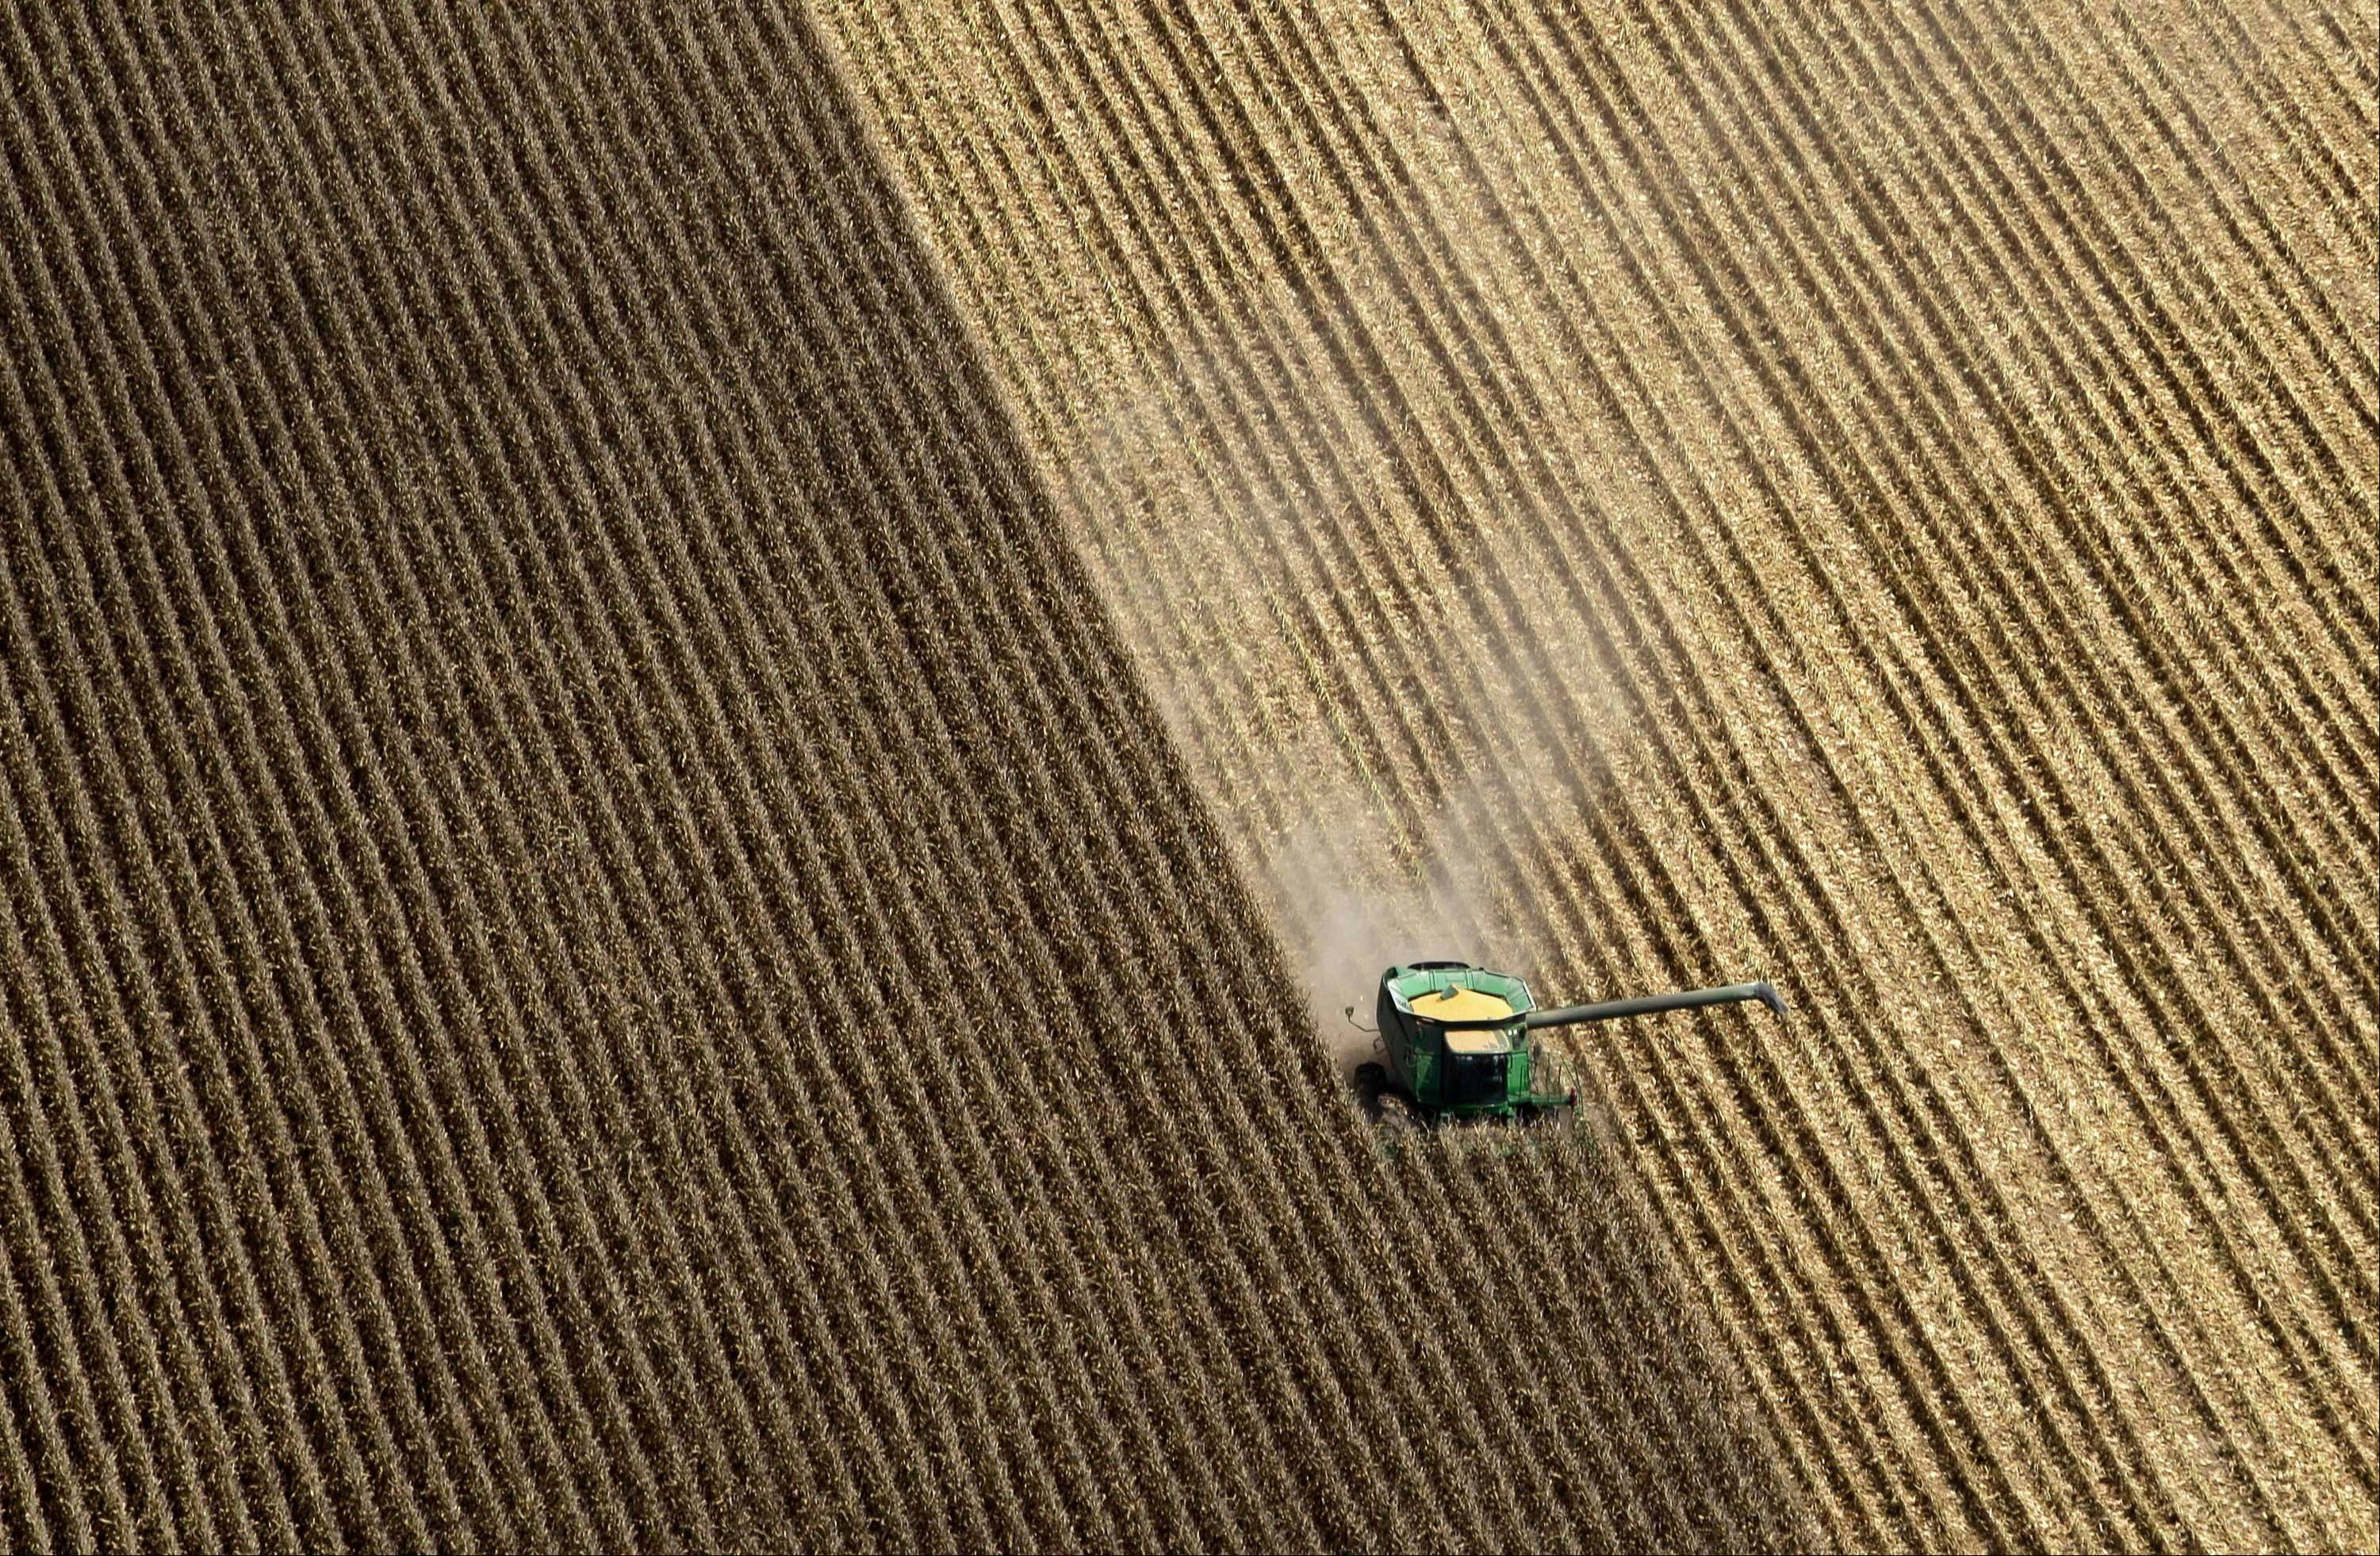 A combine harvests corn Thursday in a field near Coy, Ark.